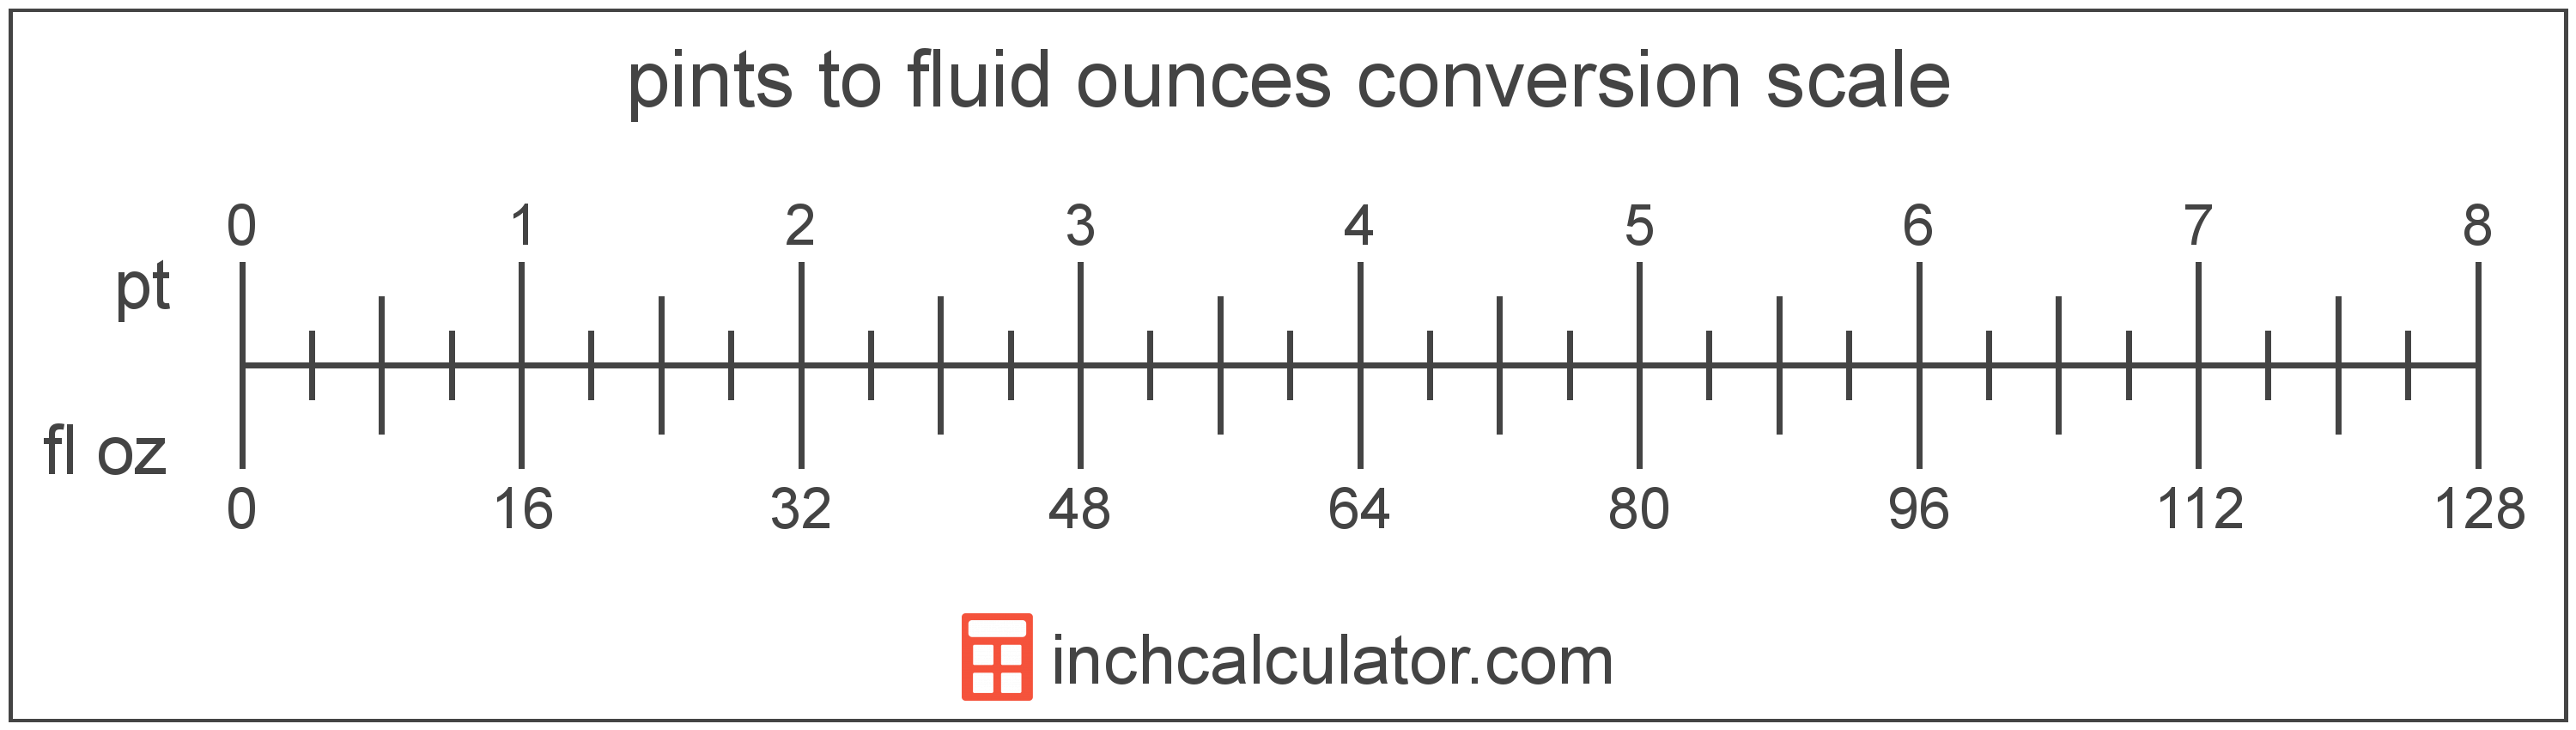 conversion scale showing pints and equivalent fluid ounces volume values